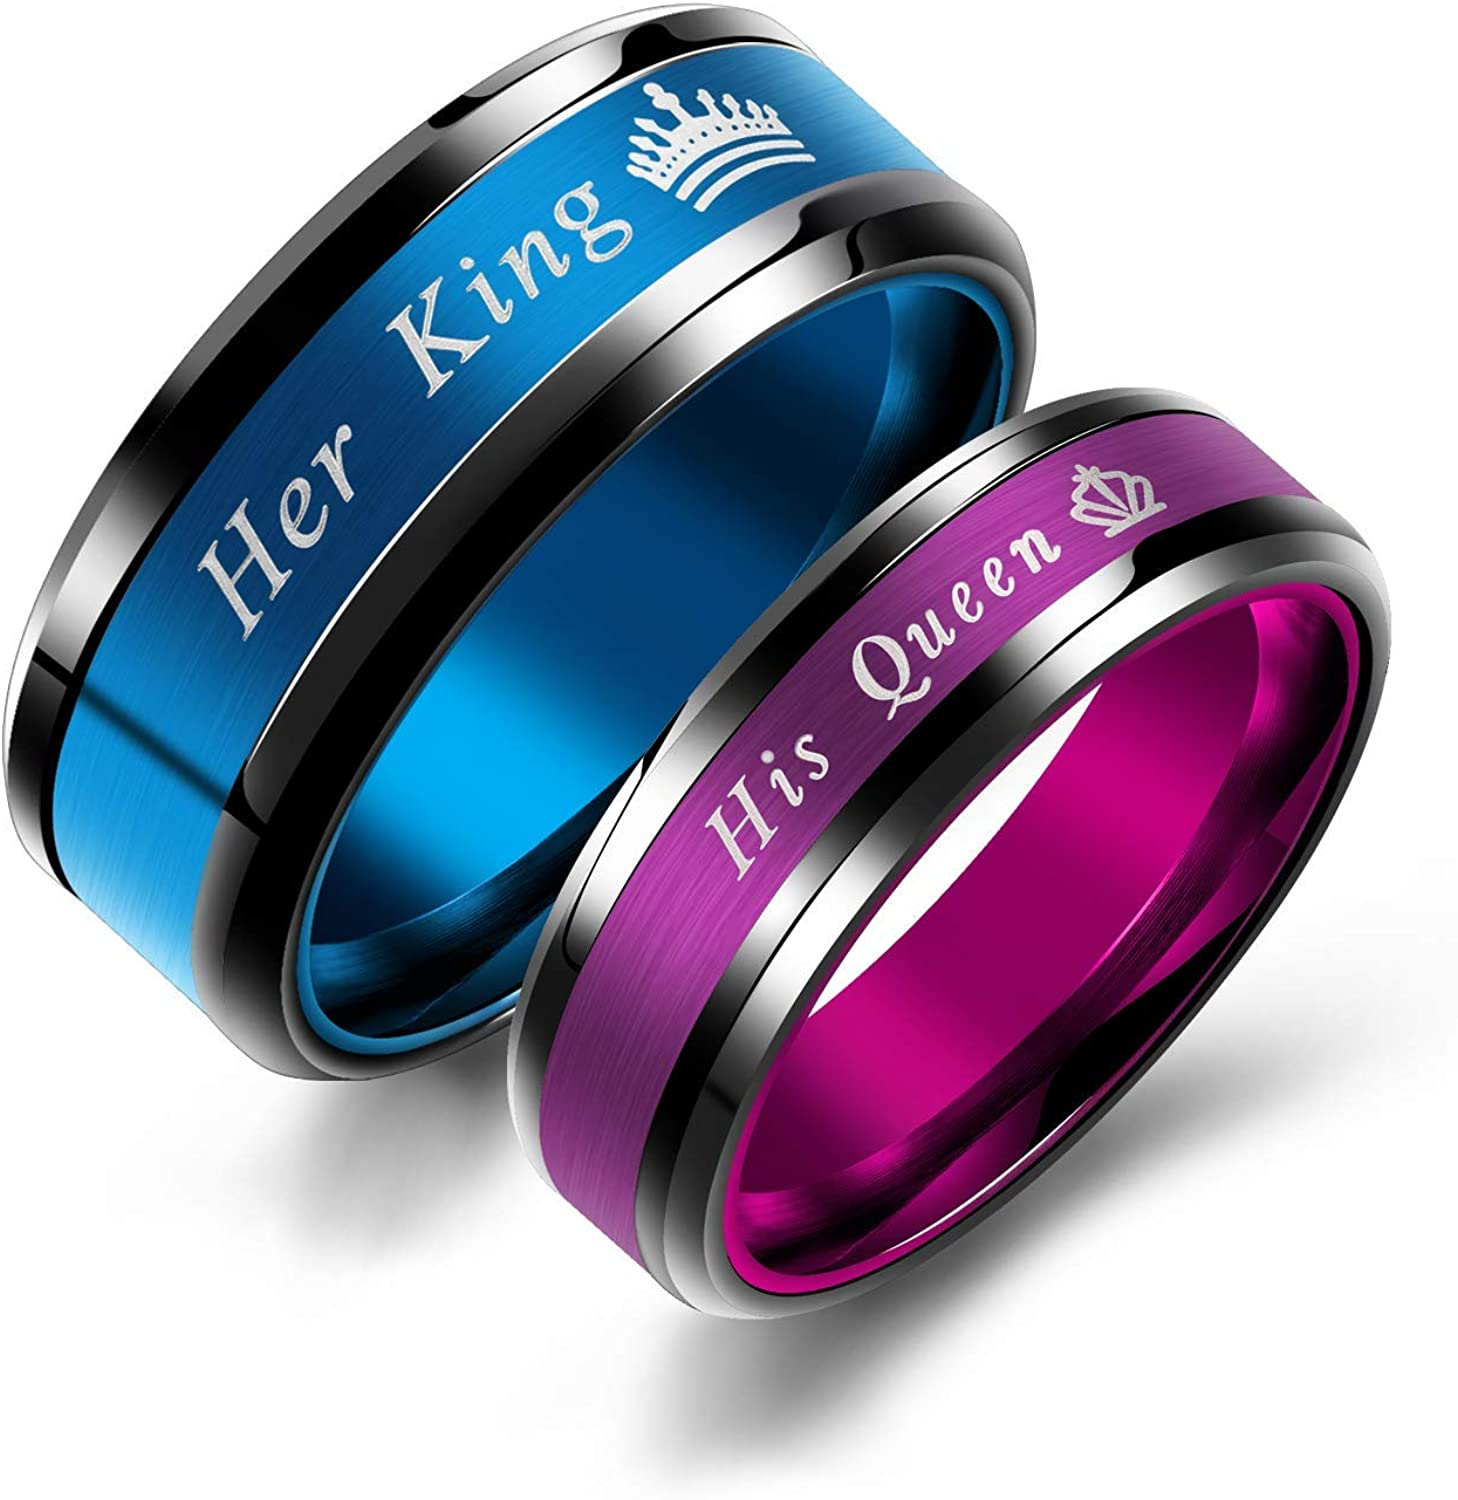 Amazing Couples Wedding Bands Stainless Steel Blue Her King/Purple His Queen Rings Anniversary Promise Engagement Bridal Gifts